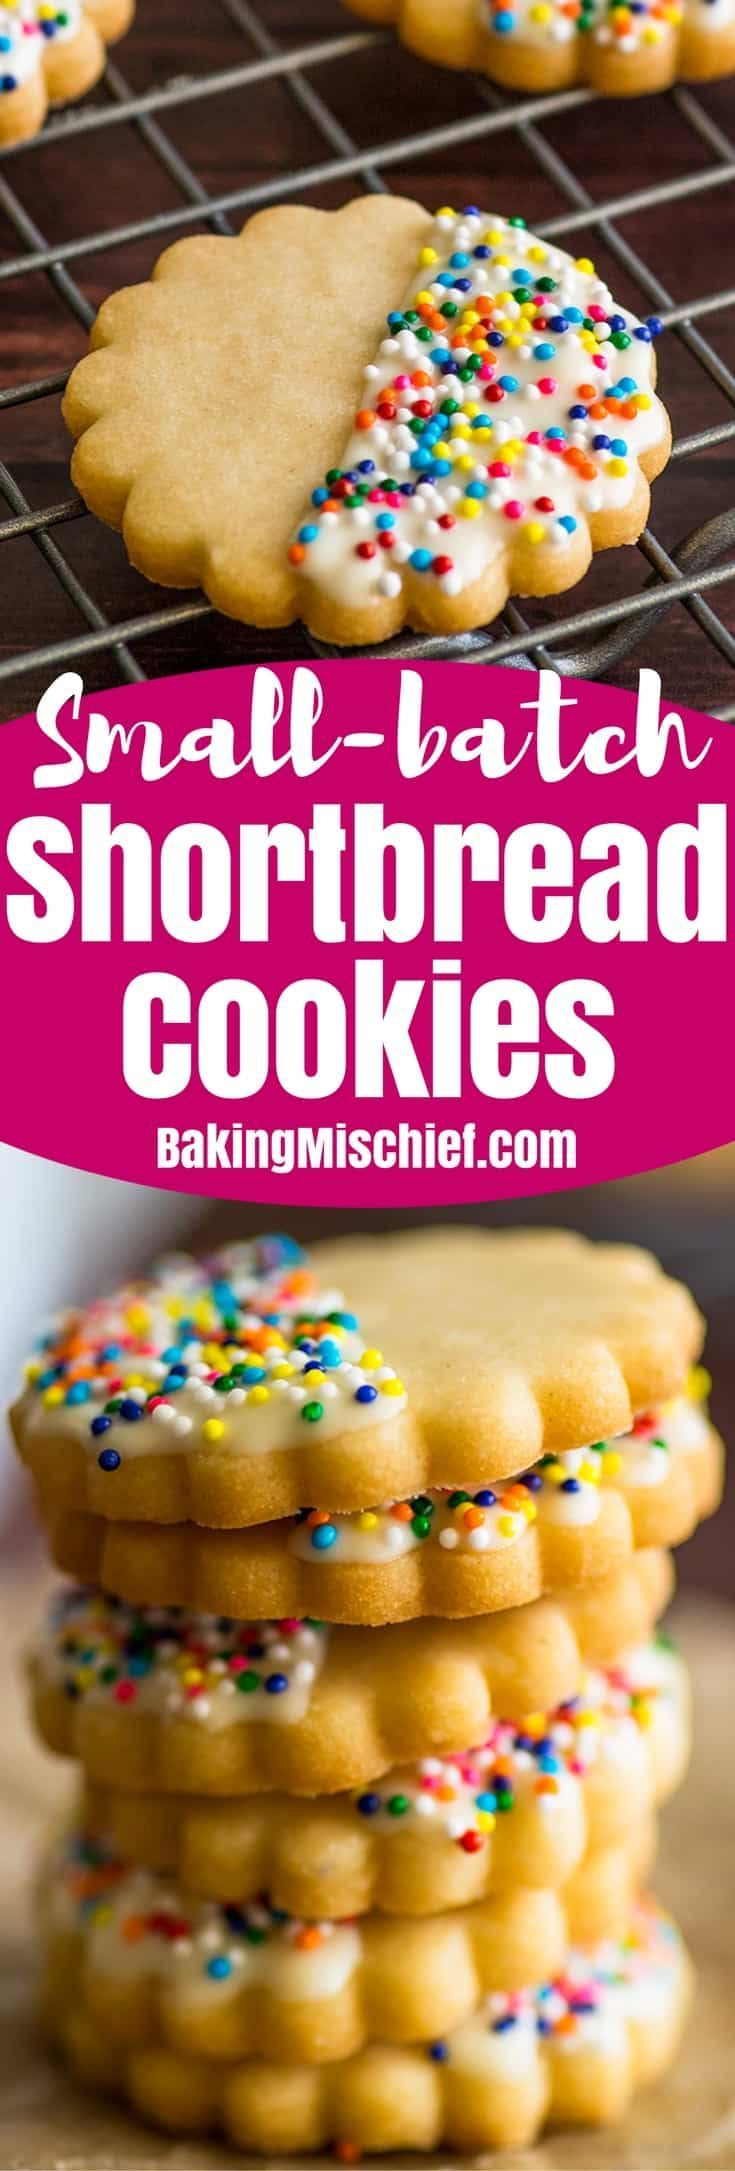 These Small-batch Shortbread Cookies are buttery, crumbly, and perfect when paired with a cup of hot tea or coffee.  | #cookies | #smallbatch | #smallbatchdessert | #shortbread | #dessert |